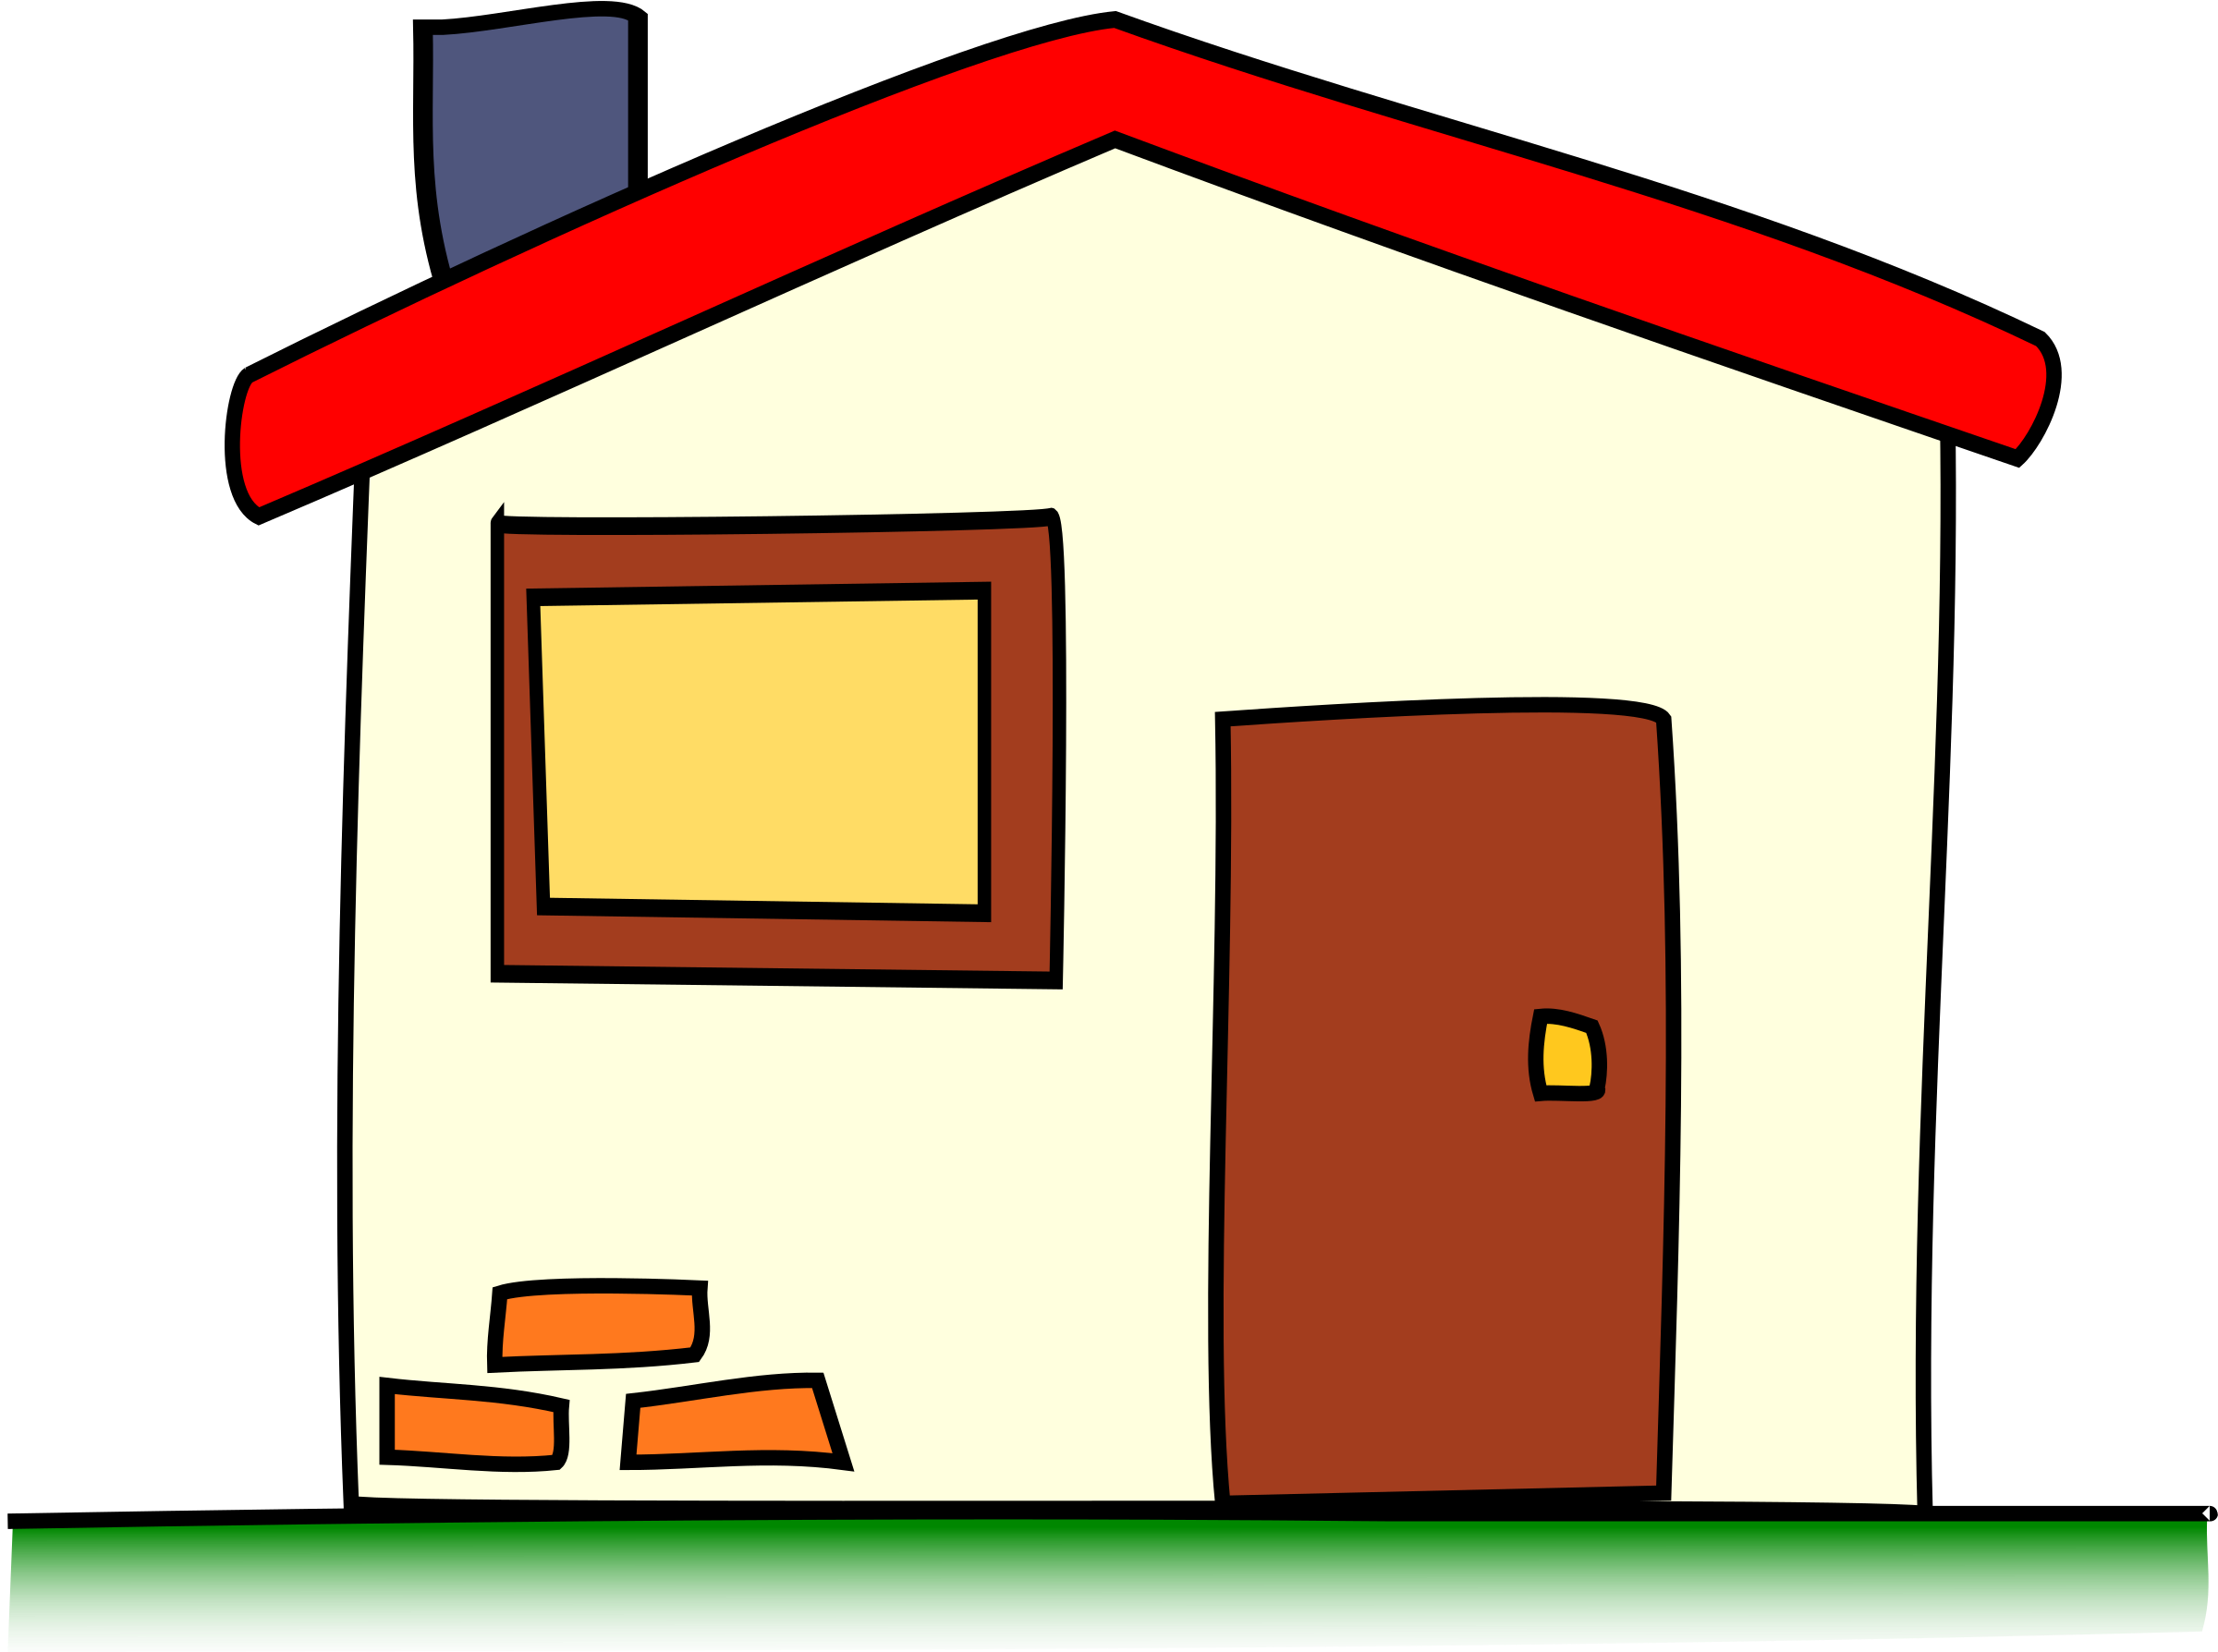 House clipart #17, Download drawings